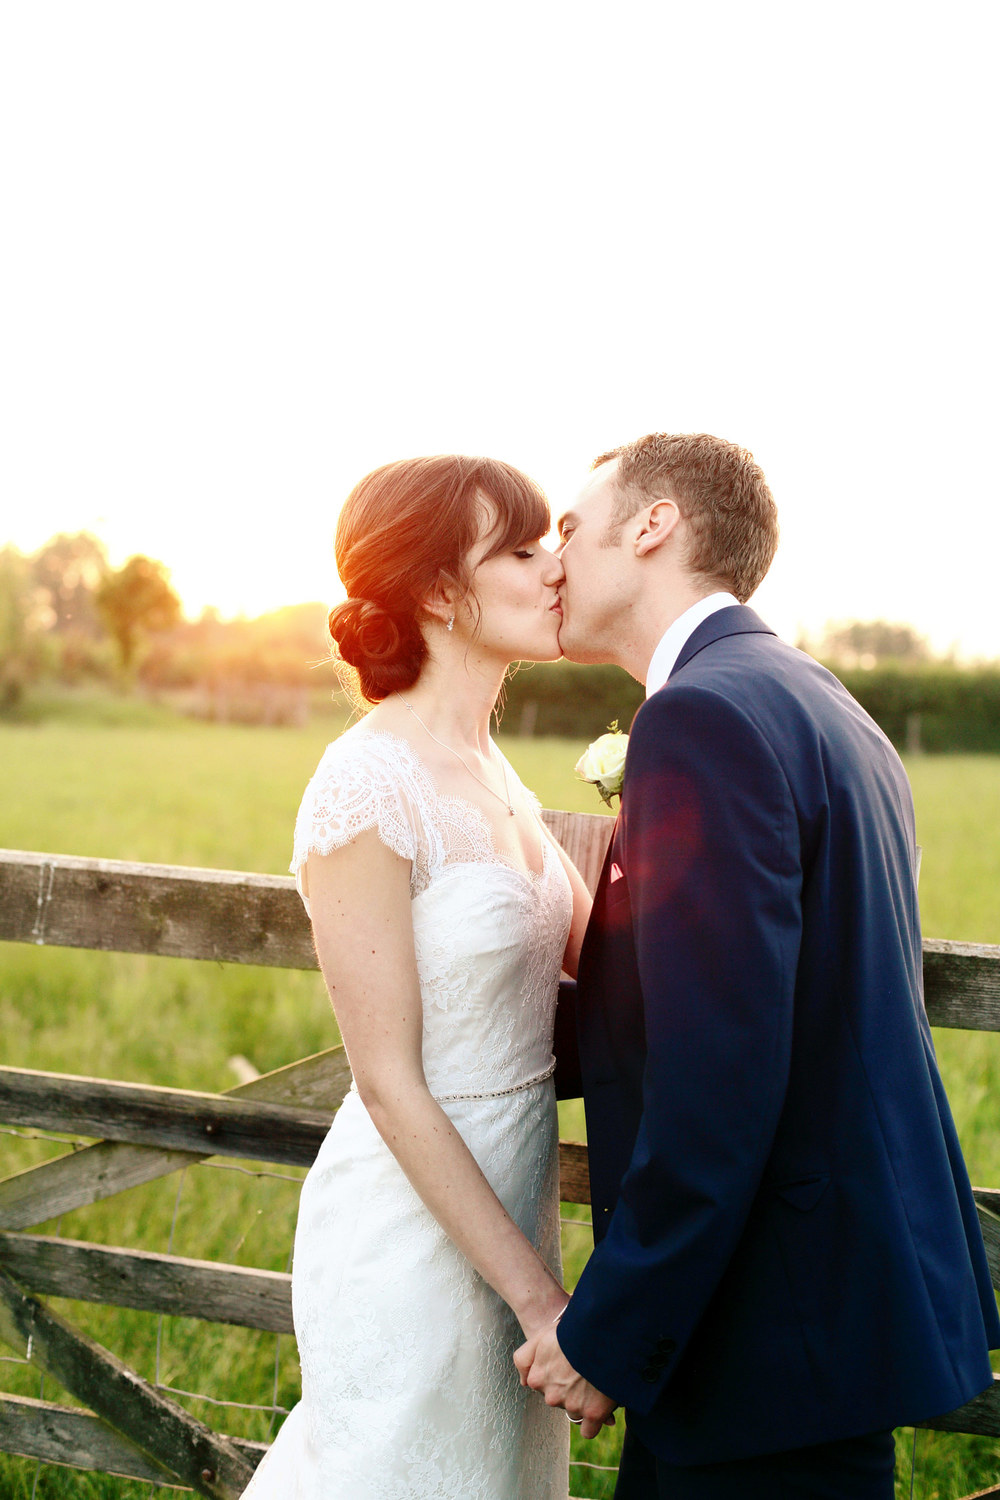 South Farm wedding sunset photo